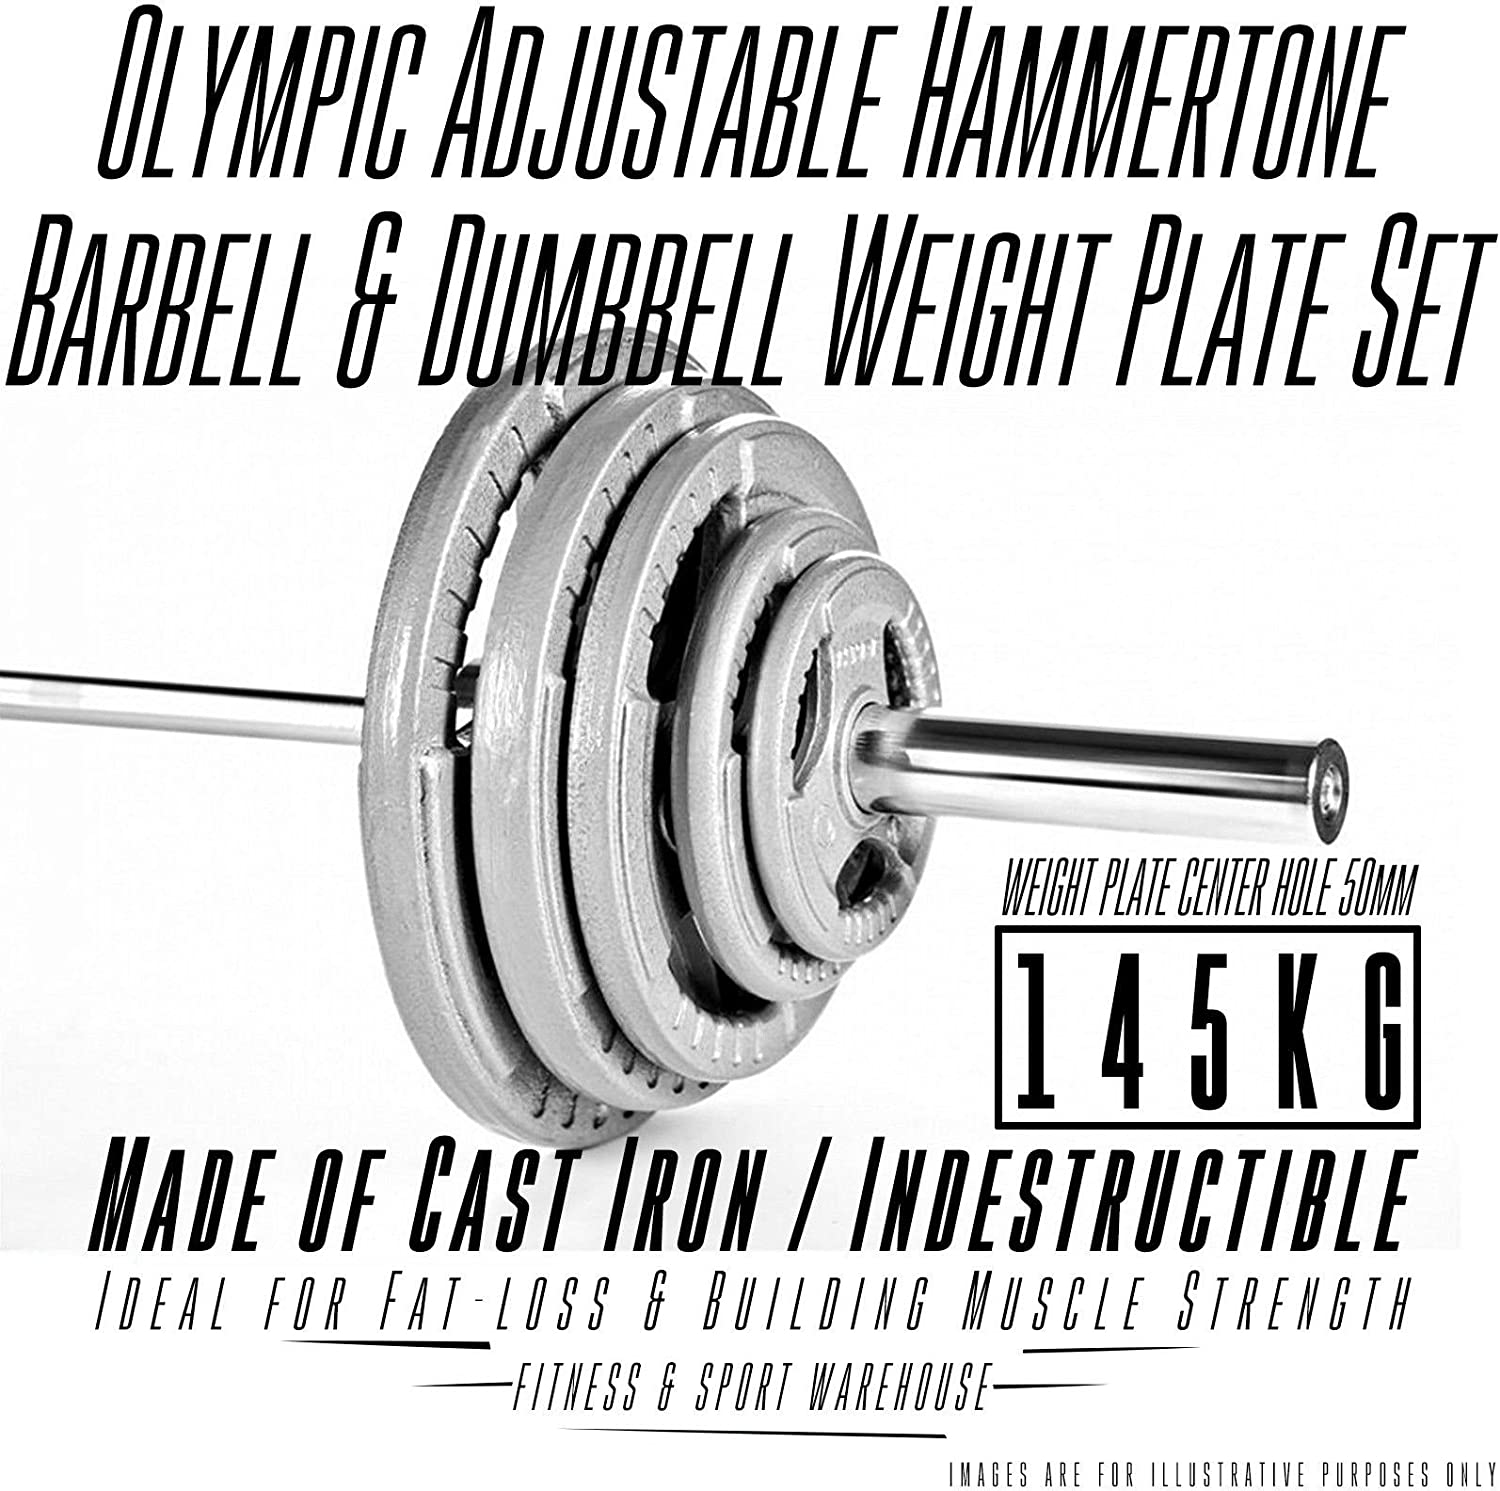 145KG Olympic Hammertone Barbell Weight Plate & 7 Ft Bar with Spring Collar